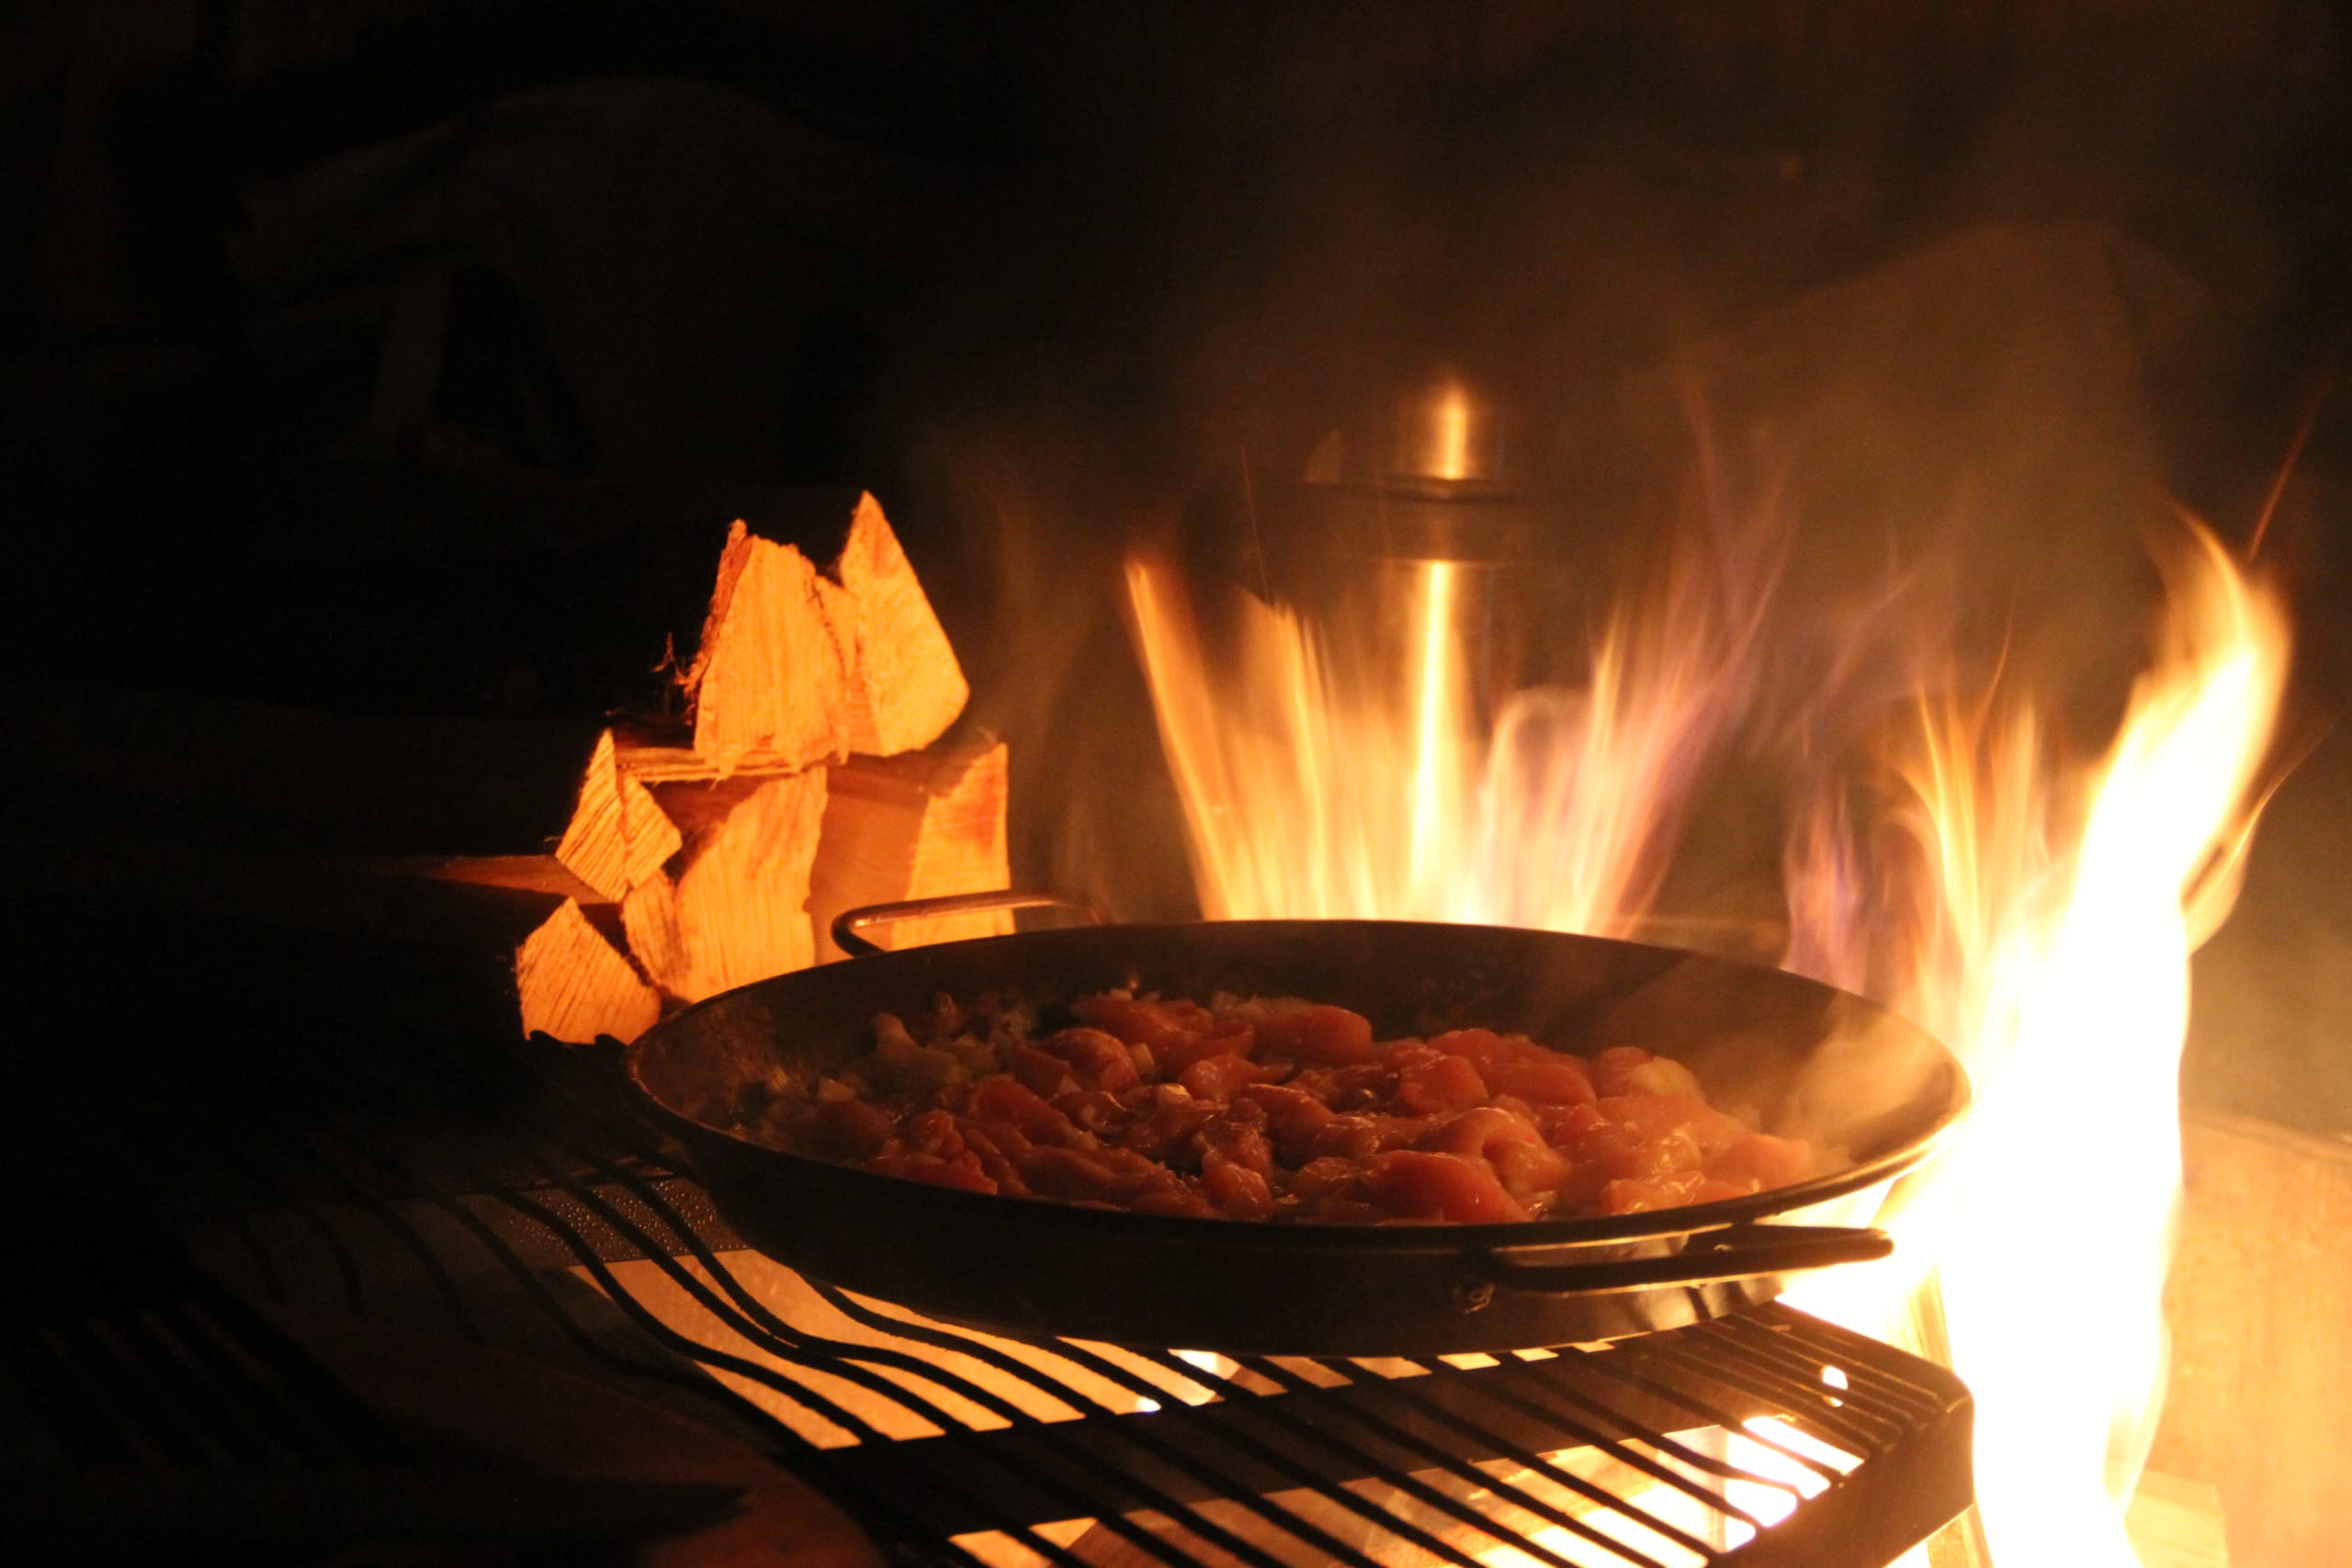 Food cooked on the fire